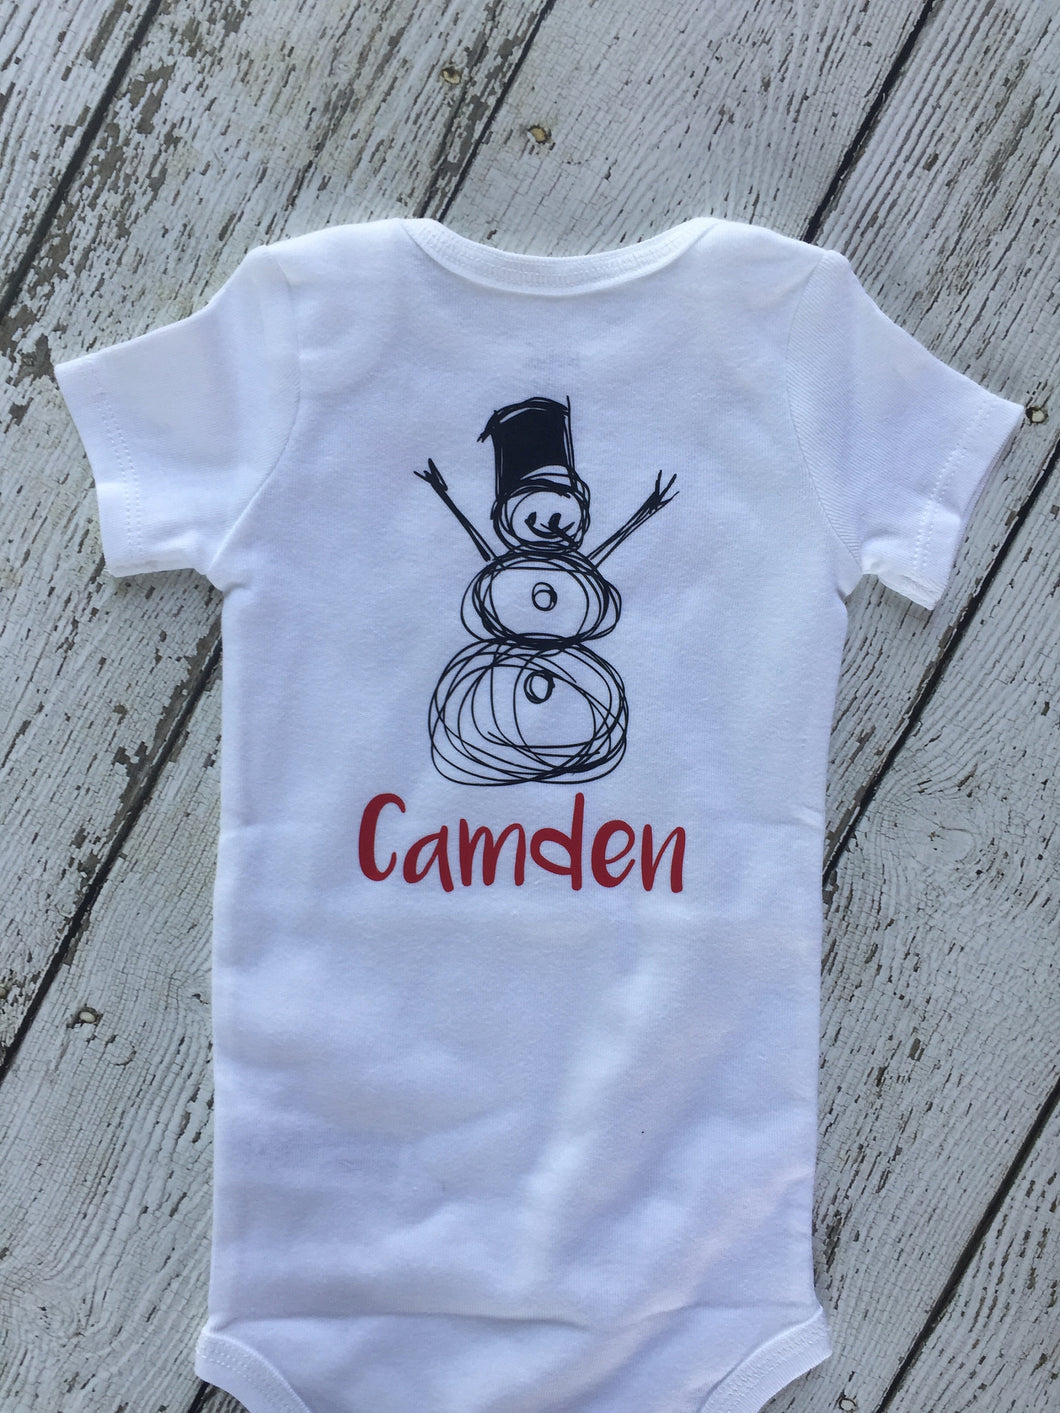 Personalized Snowman Baby Outfit, Snowman Baby Outfit Personalized, Baby Outfit Personalized Snowman, Baby Boy Girl Snowman Outfit Gift